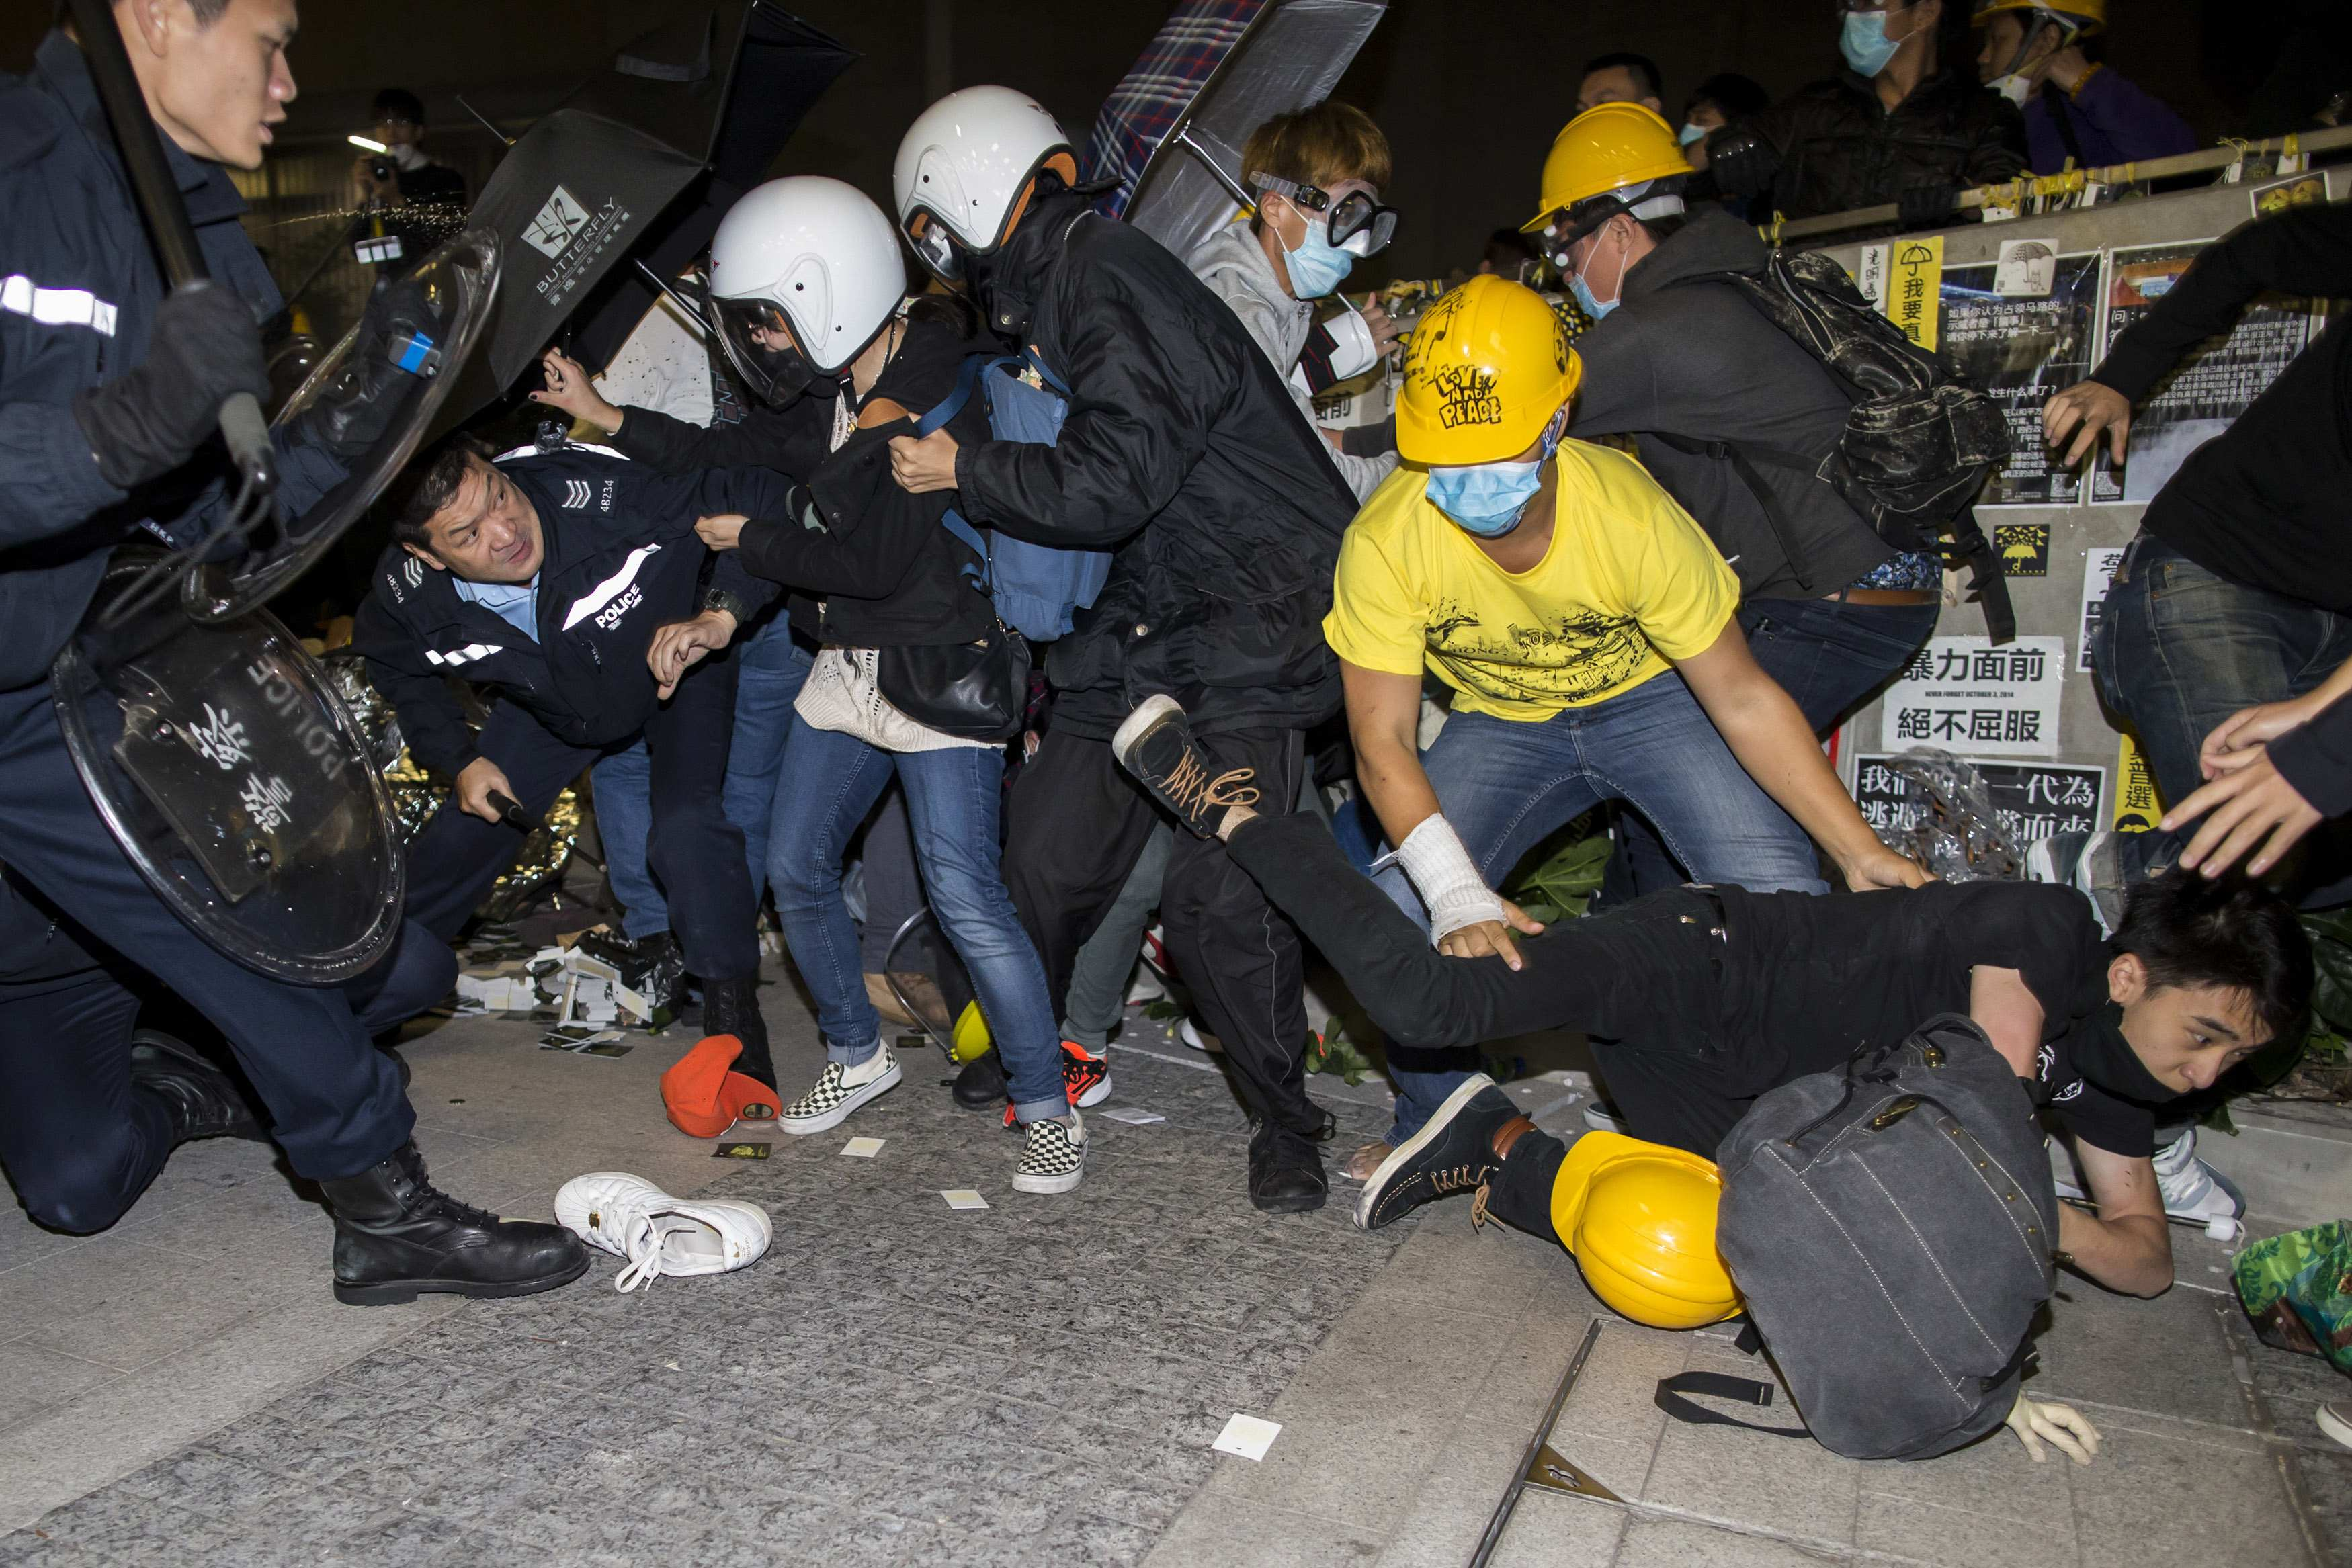 A protester falls on the ground as they are chased by riot police outside the Legislative Council in Hong Kong early